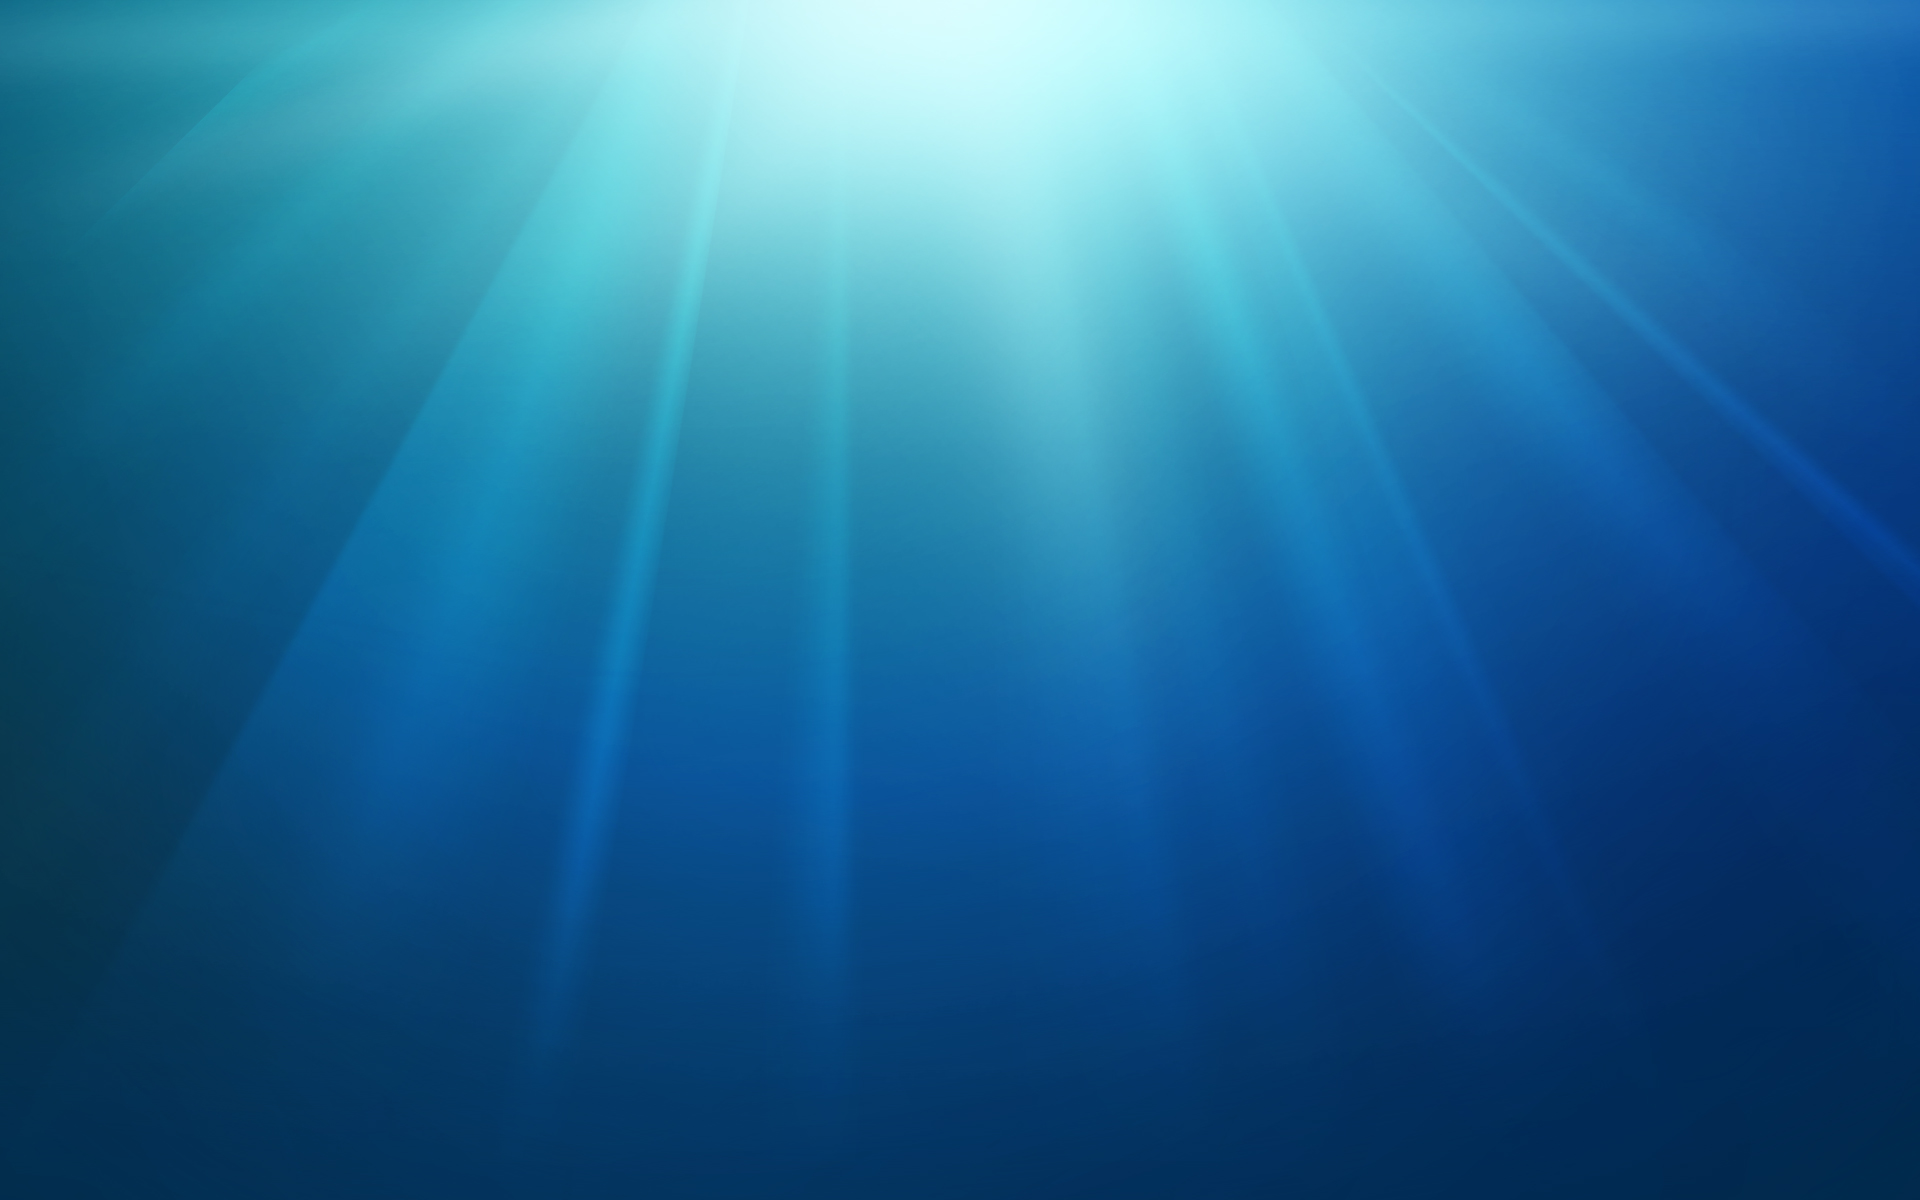 Underwater Light   Cool Twitter Backgrounds 1920x1200